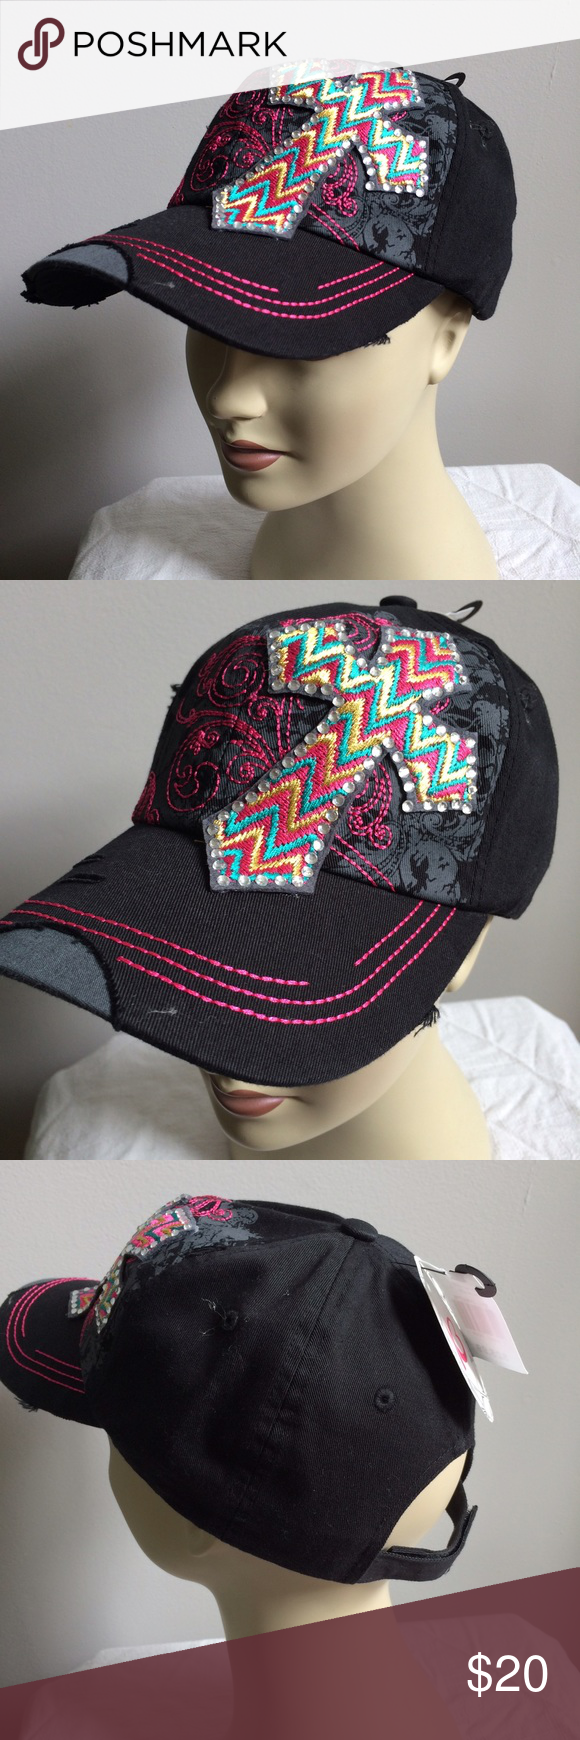 17ff9512d7e NWT Black Cross Multi-Colored Baseball Hat Jeweled Brand new with attached  tags. Retail  25.99. Accessories Hats